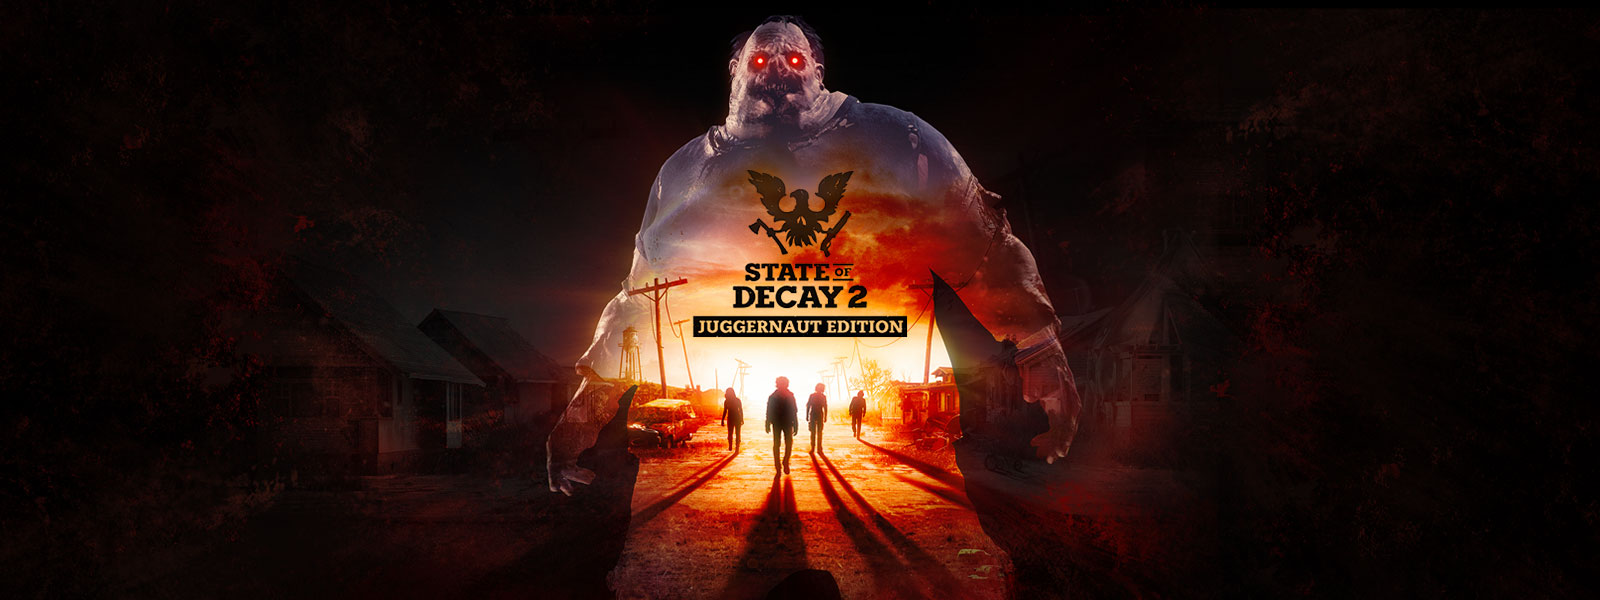 Overlay of the Juggernaut from State of Decay 2 Juggernaut Edition with zombies on a abandoned street